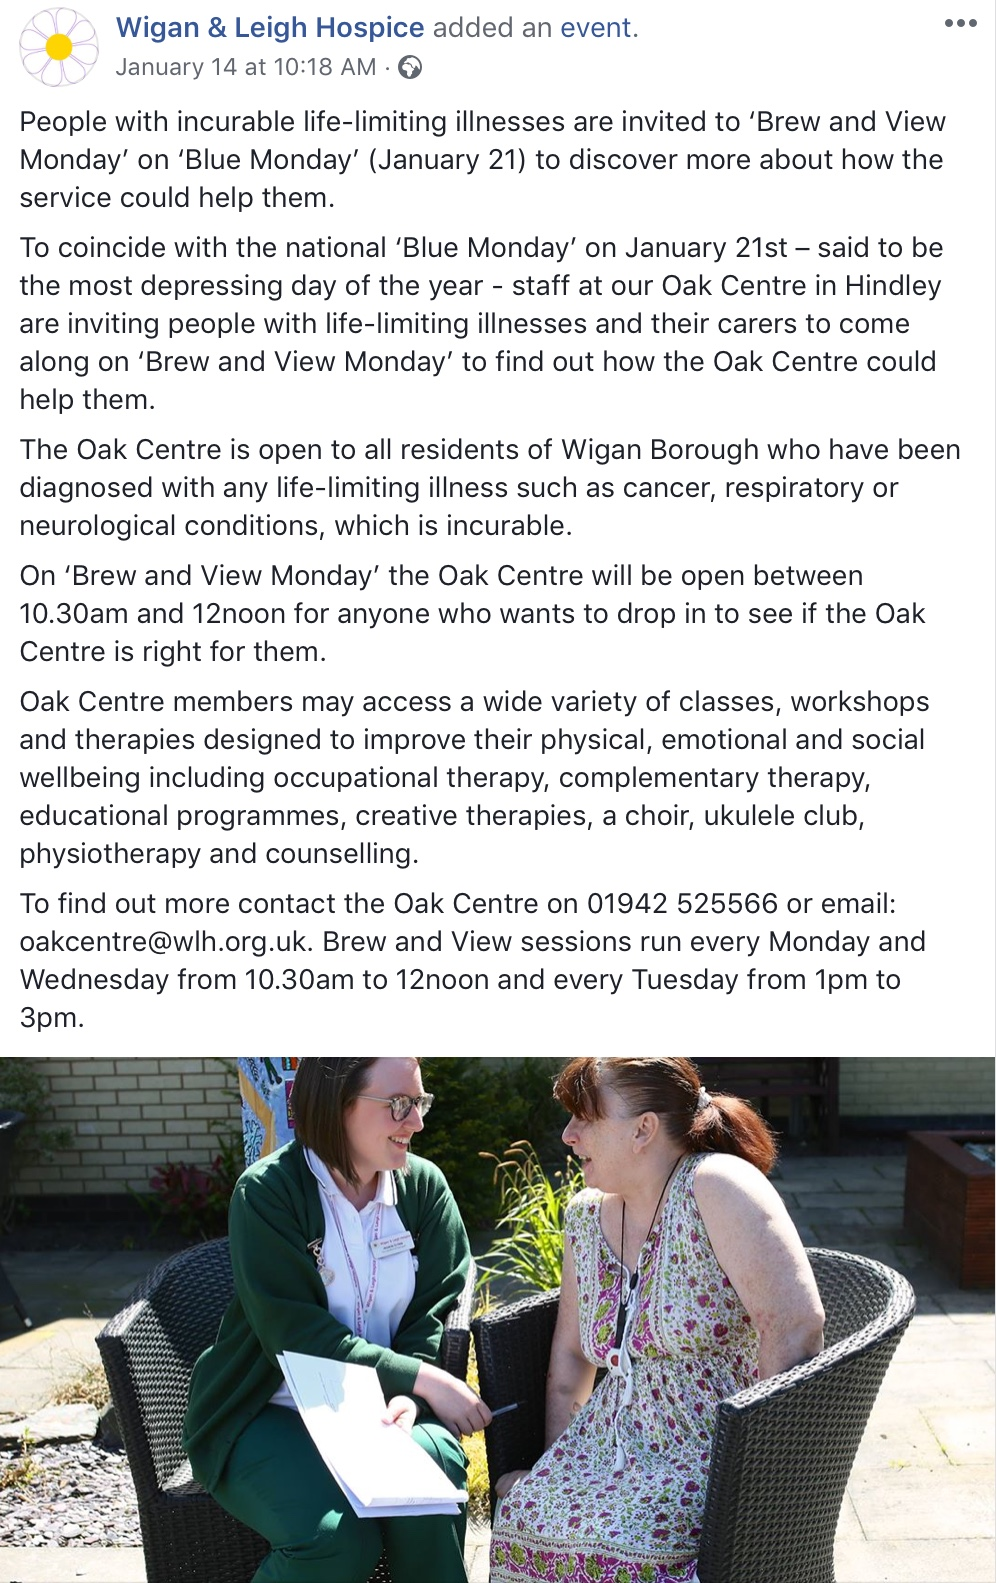 The Oak Centre, Wigan & Leigh Hospice 27356a10